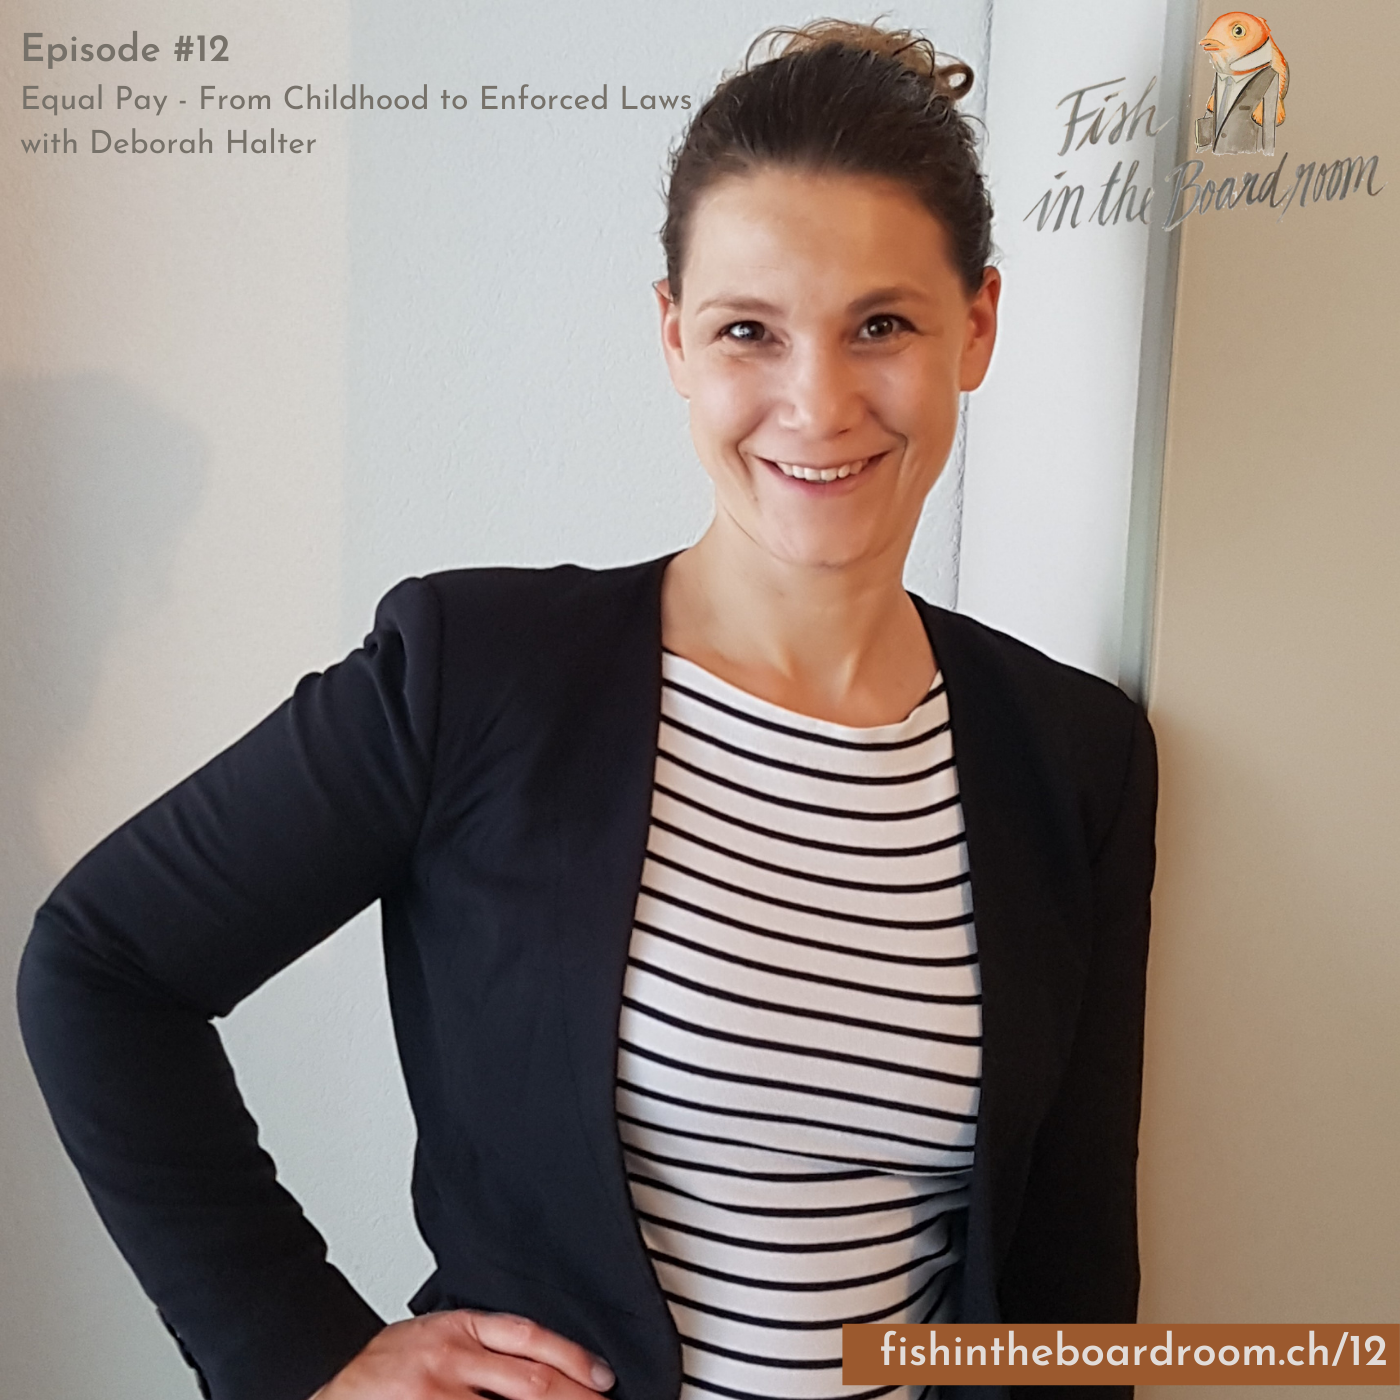 #12 Equal Pay - From Childhood to Enforced Laws with Deborah Halter